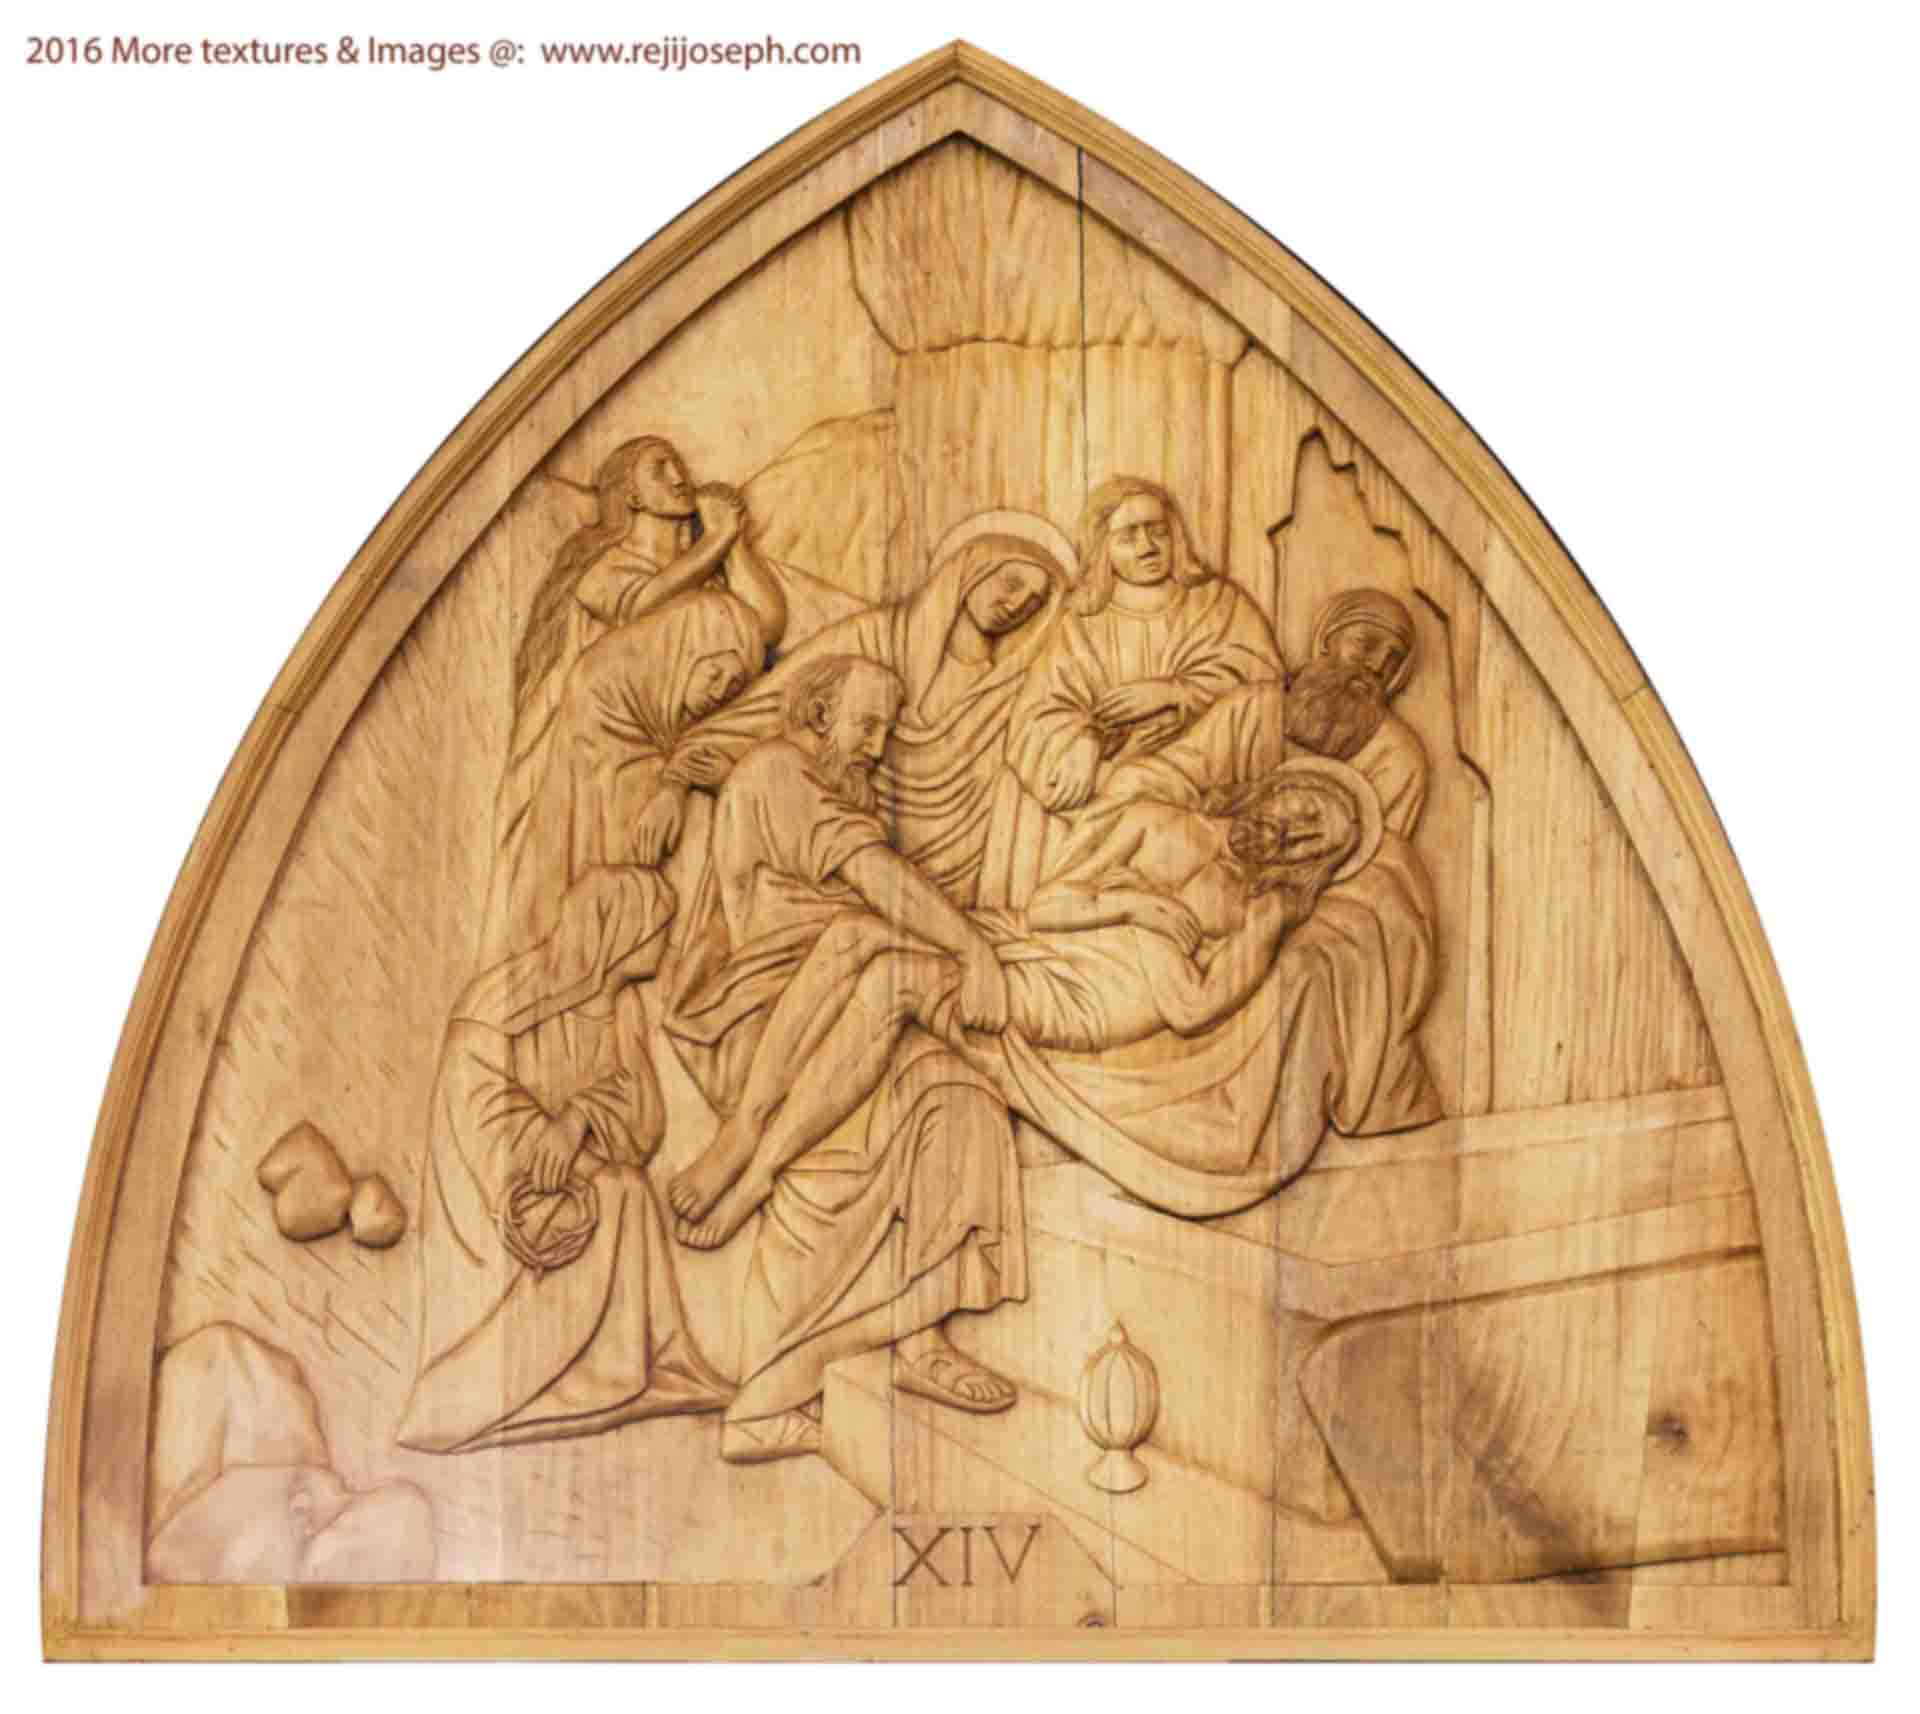 Way of the cross wooden relief 014